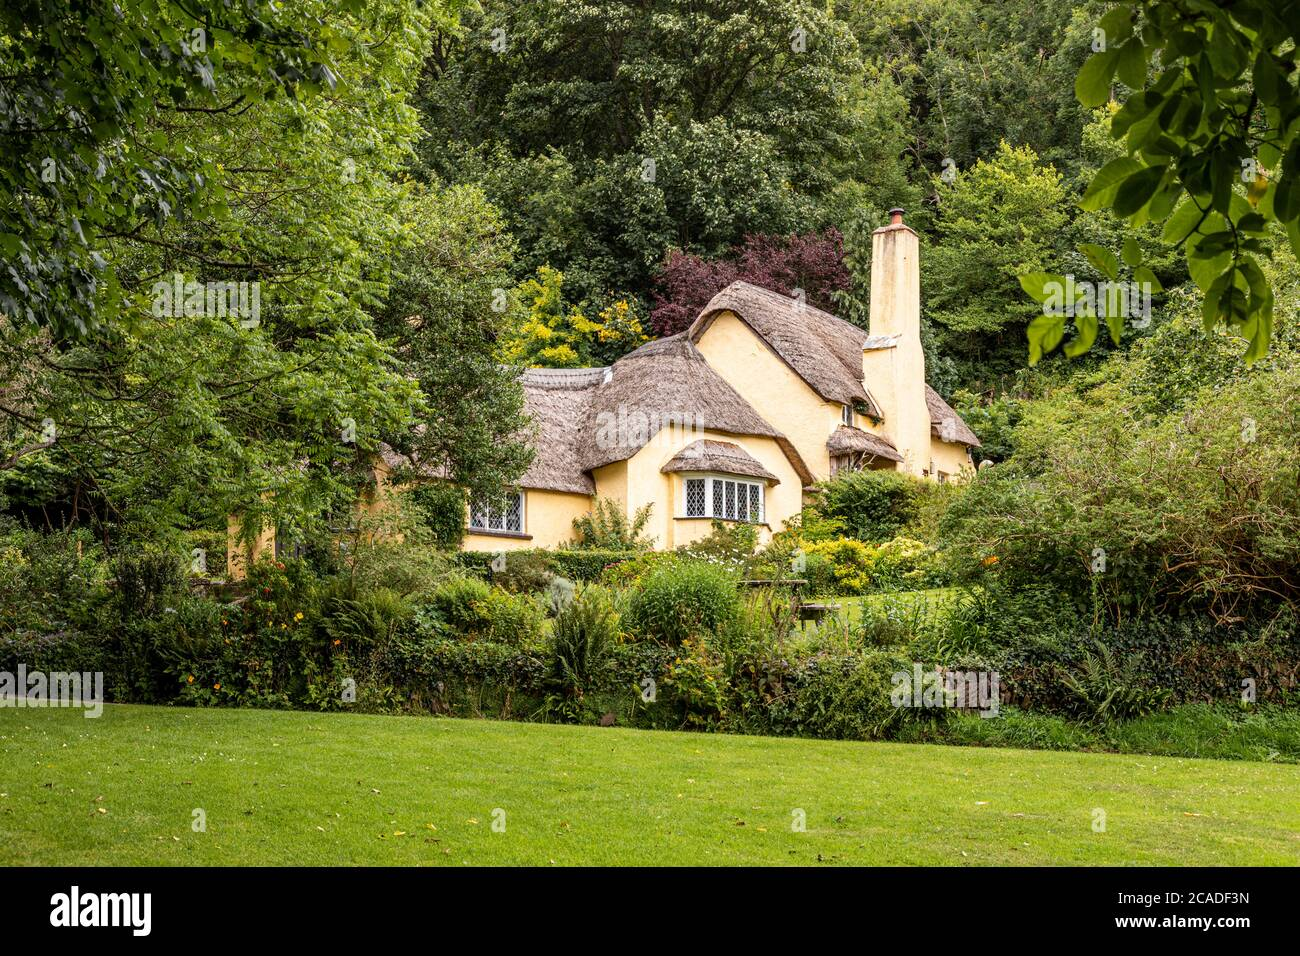 Exmoor National Park - A typical thatched cottage in the village of Selworthy, Somerset UK Stock Photo